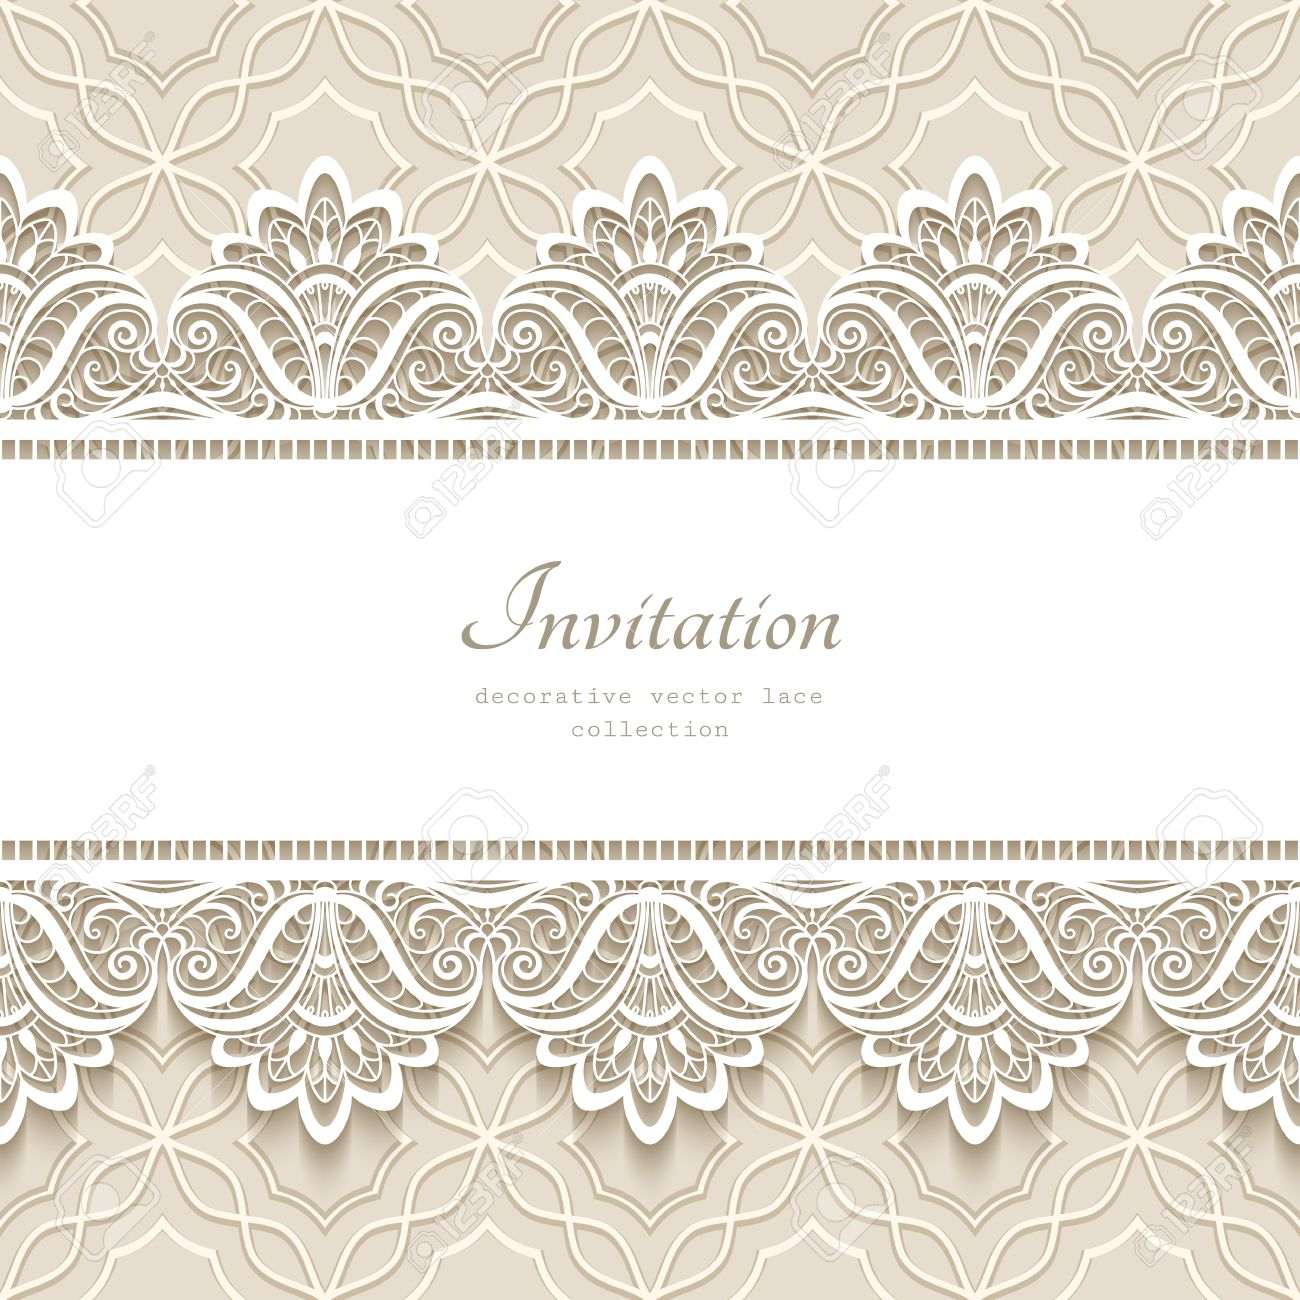 Vintage Lace Background With Seamless Border Ornament Elegant